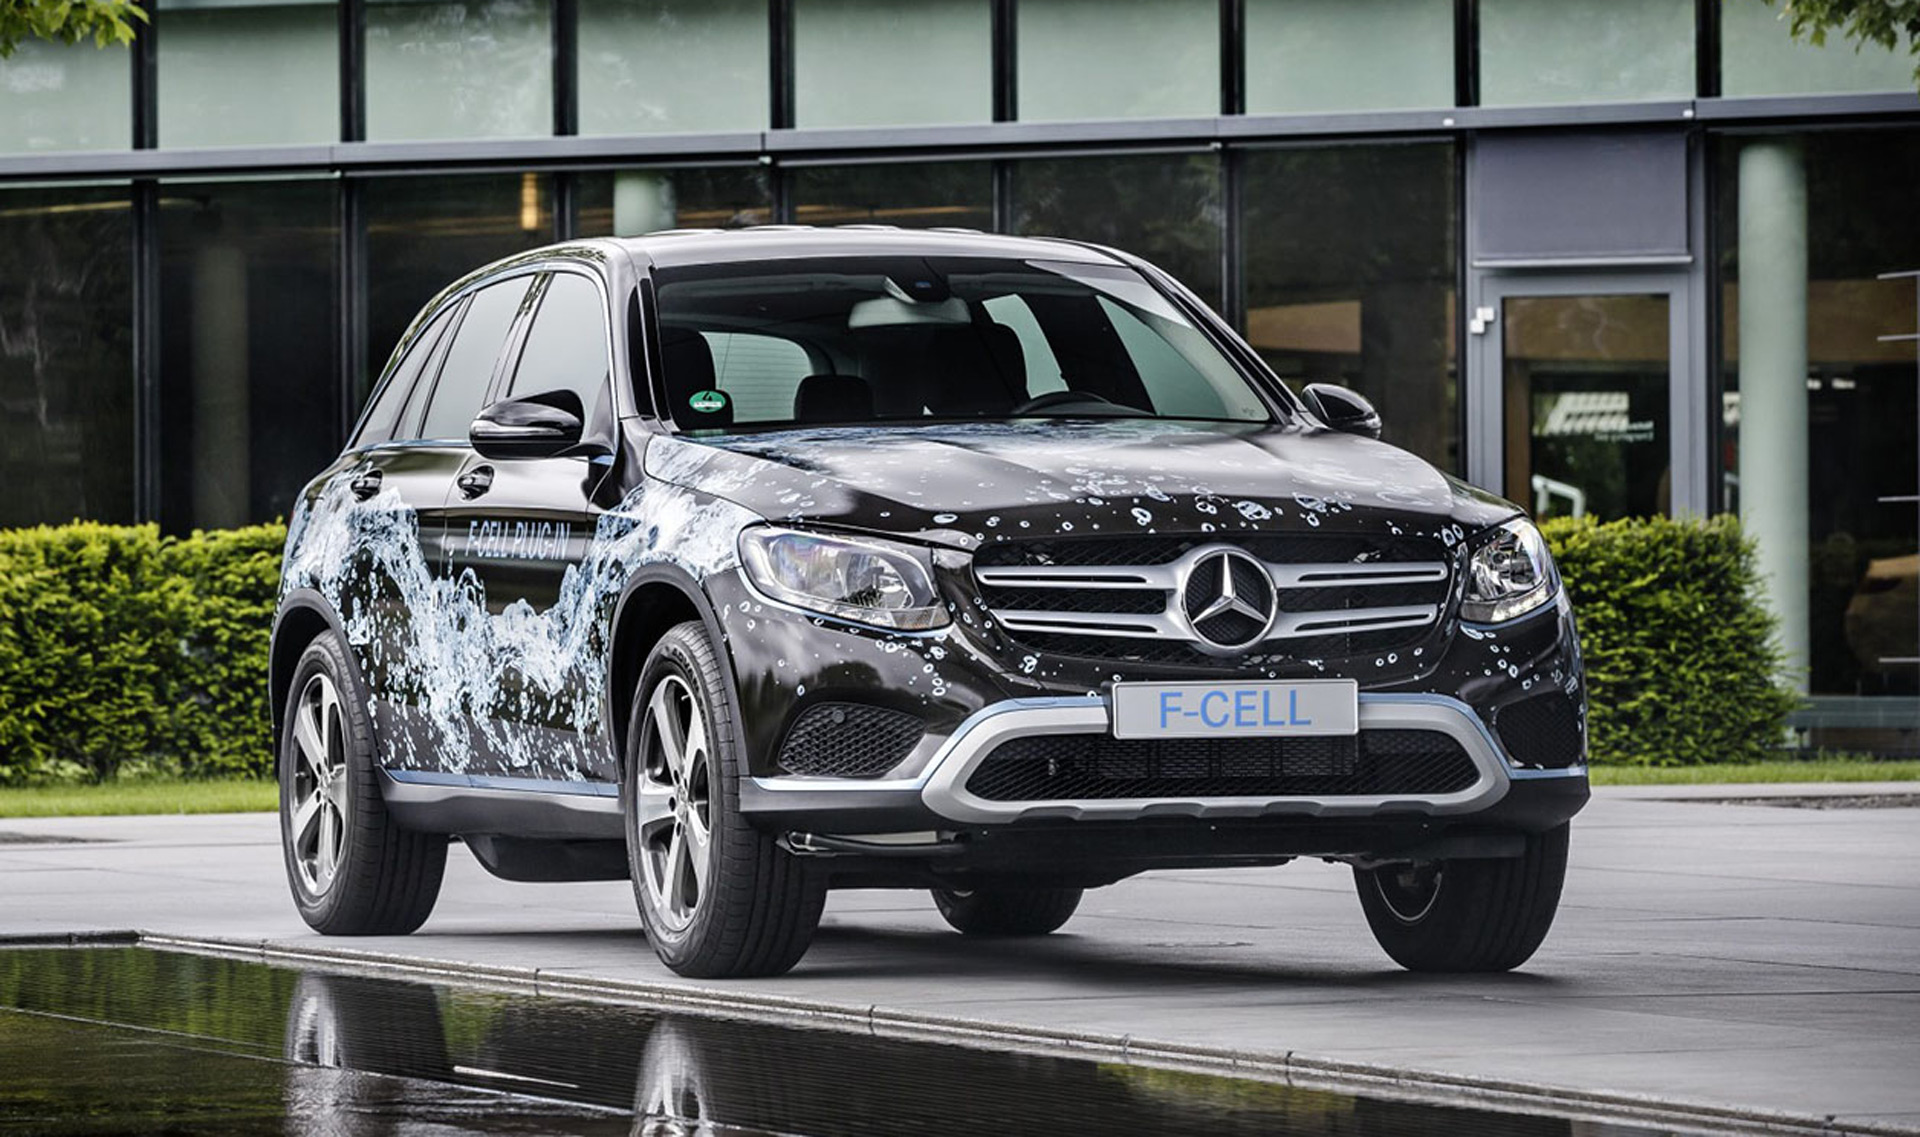 http://images.hgmsites.net/hug/mercedes-benz-glc-f-cell-eq-power-prototype_100619206_h.jpg